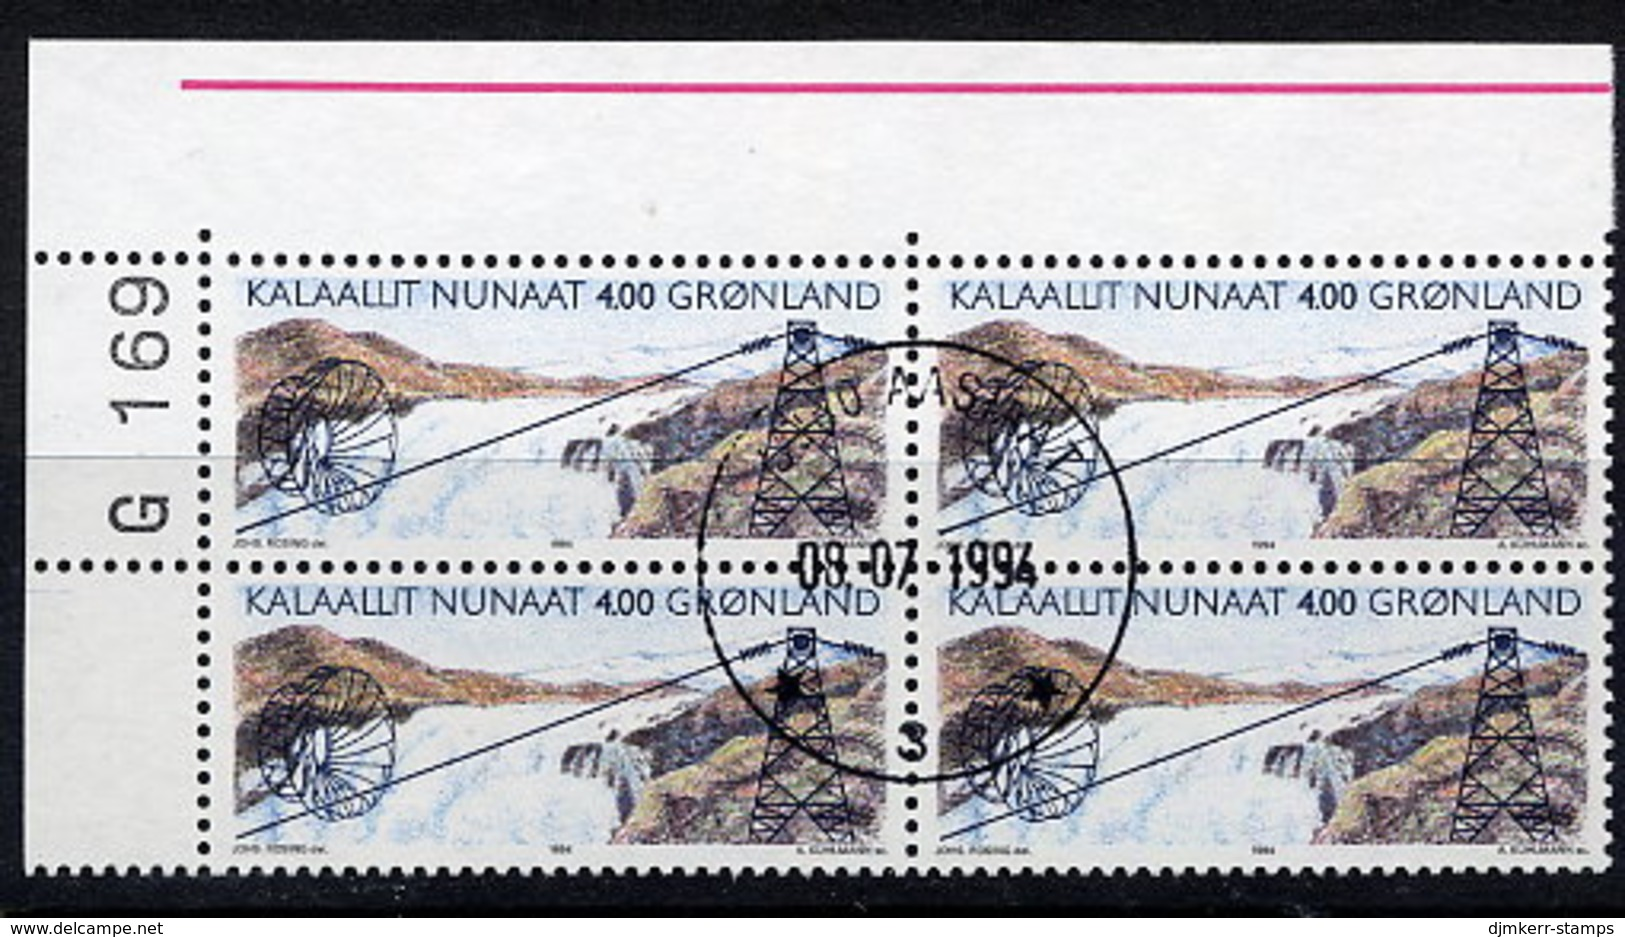 GREENLAND 1994 Hydro-electric Power Station In Used Corner Block Of 4,  Michel 246 - Used Stamps